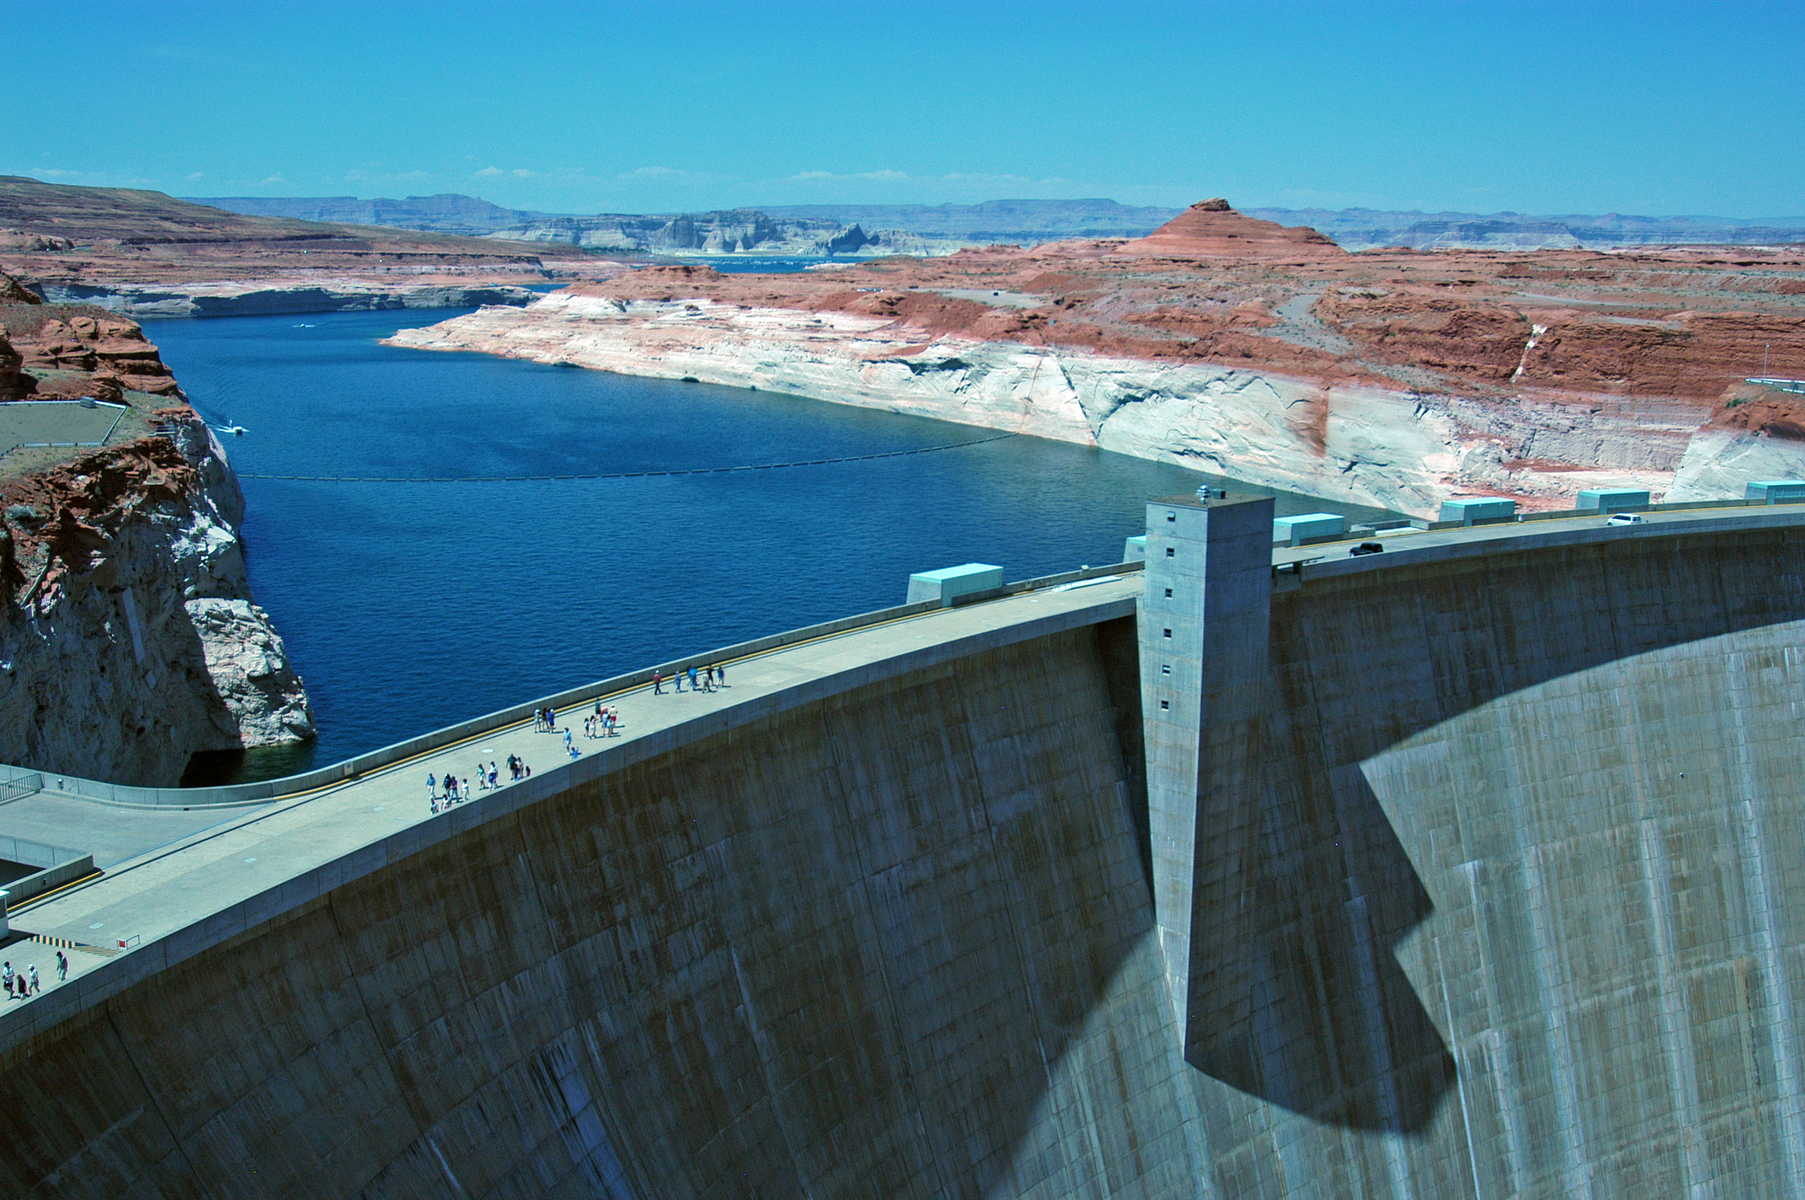 holding back the waters of Lake Powell